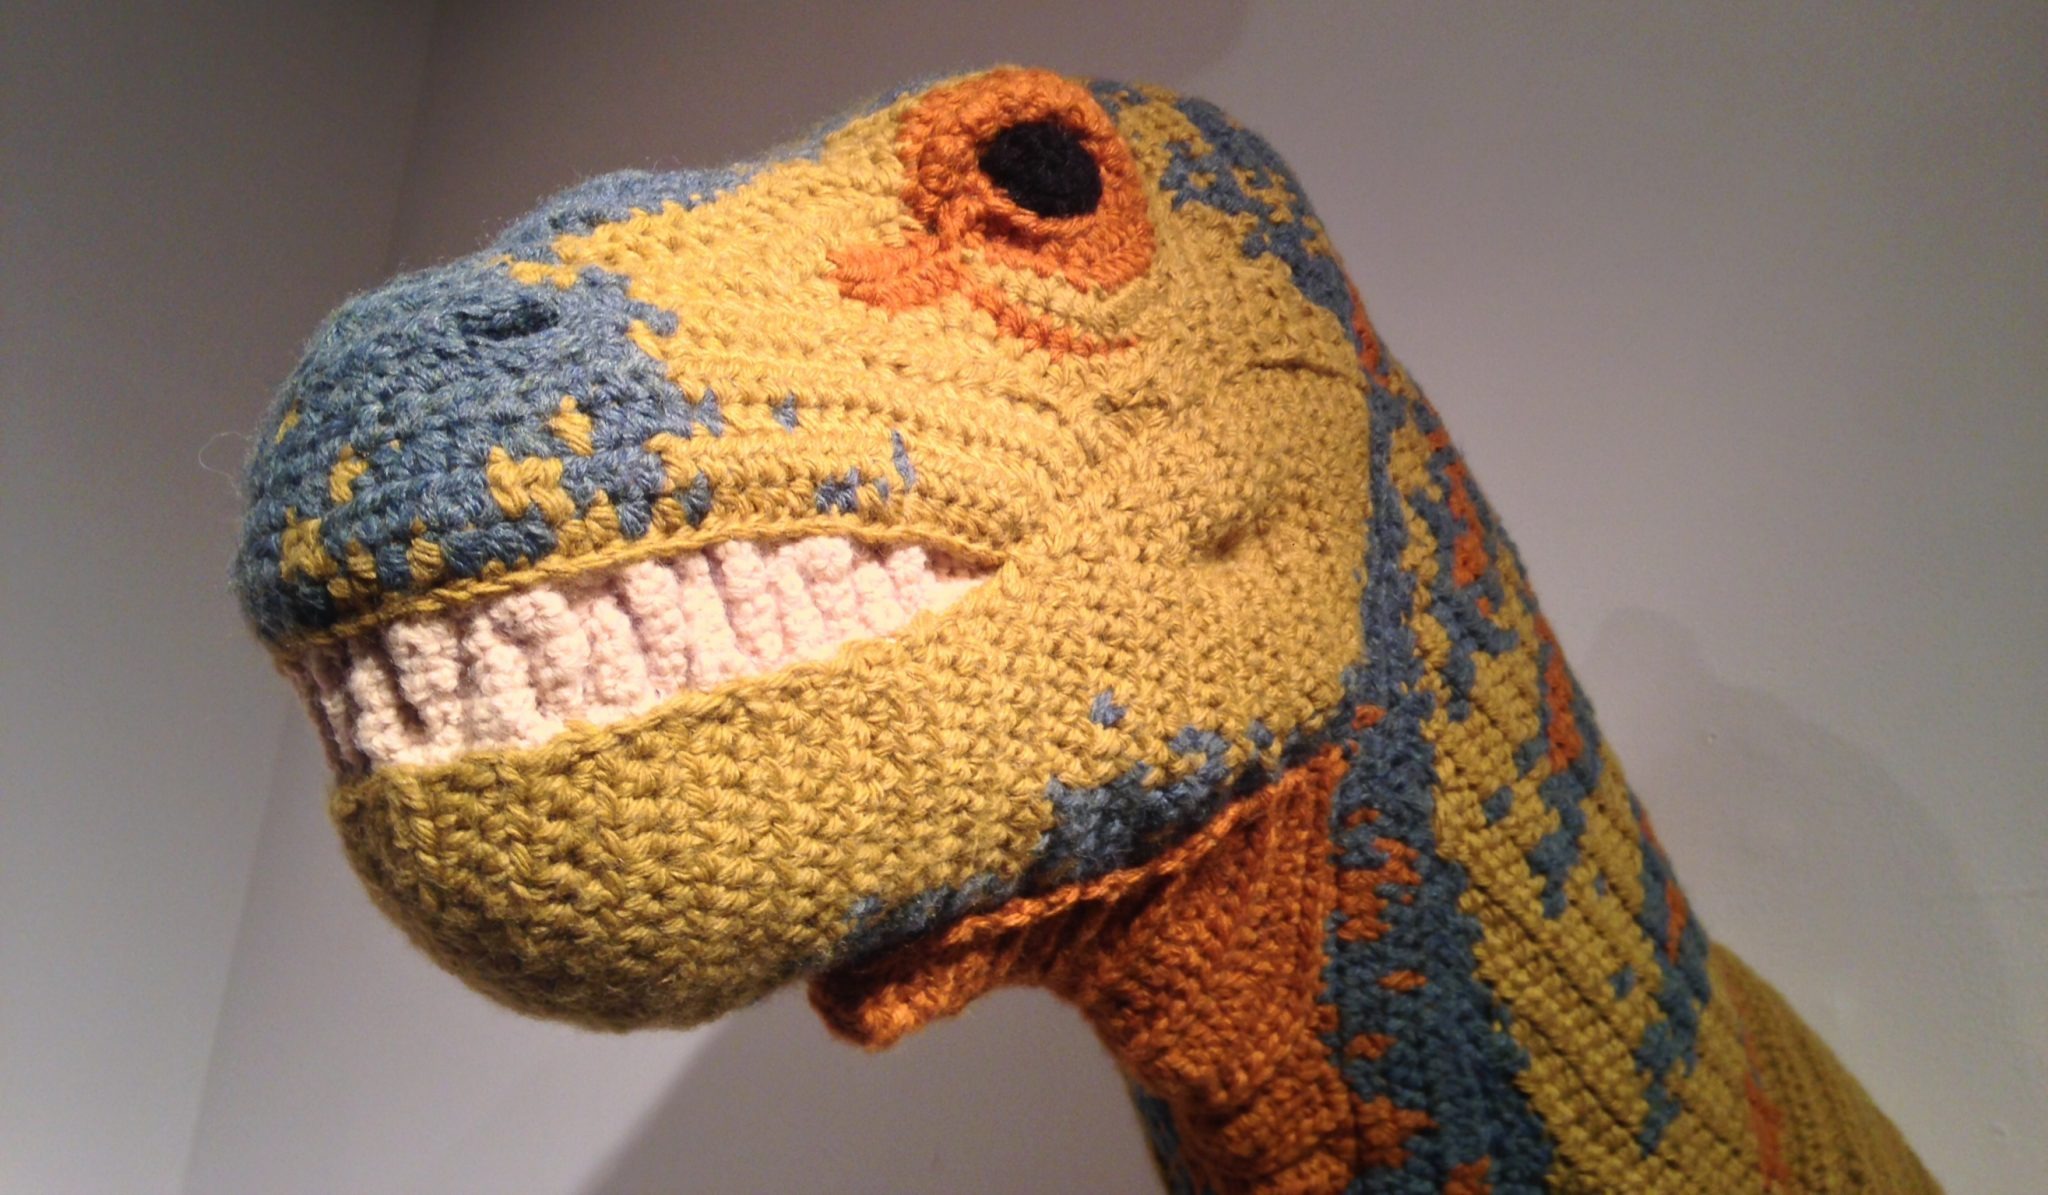 Www Crochet : ... of some of the work from prolific male crochet artist Nathan Vincent